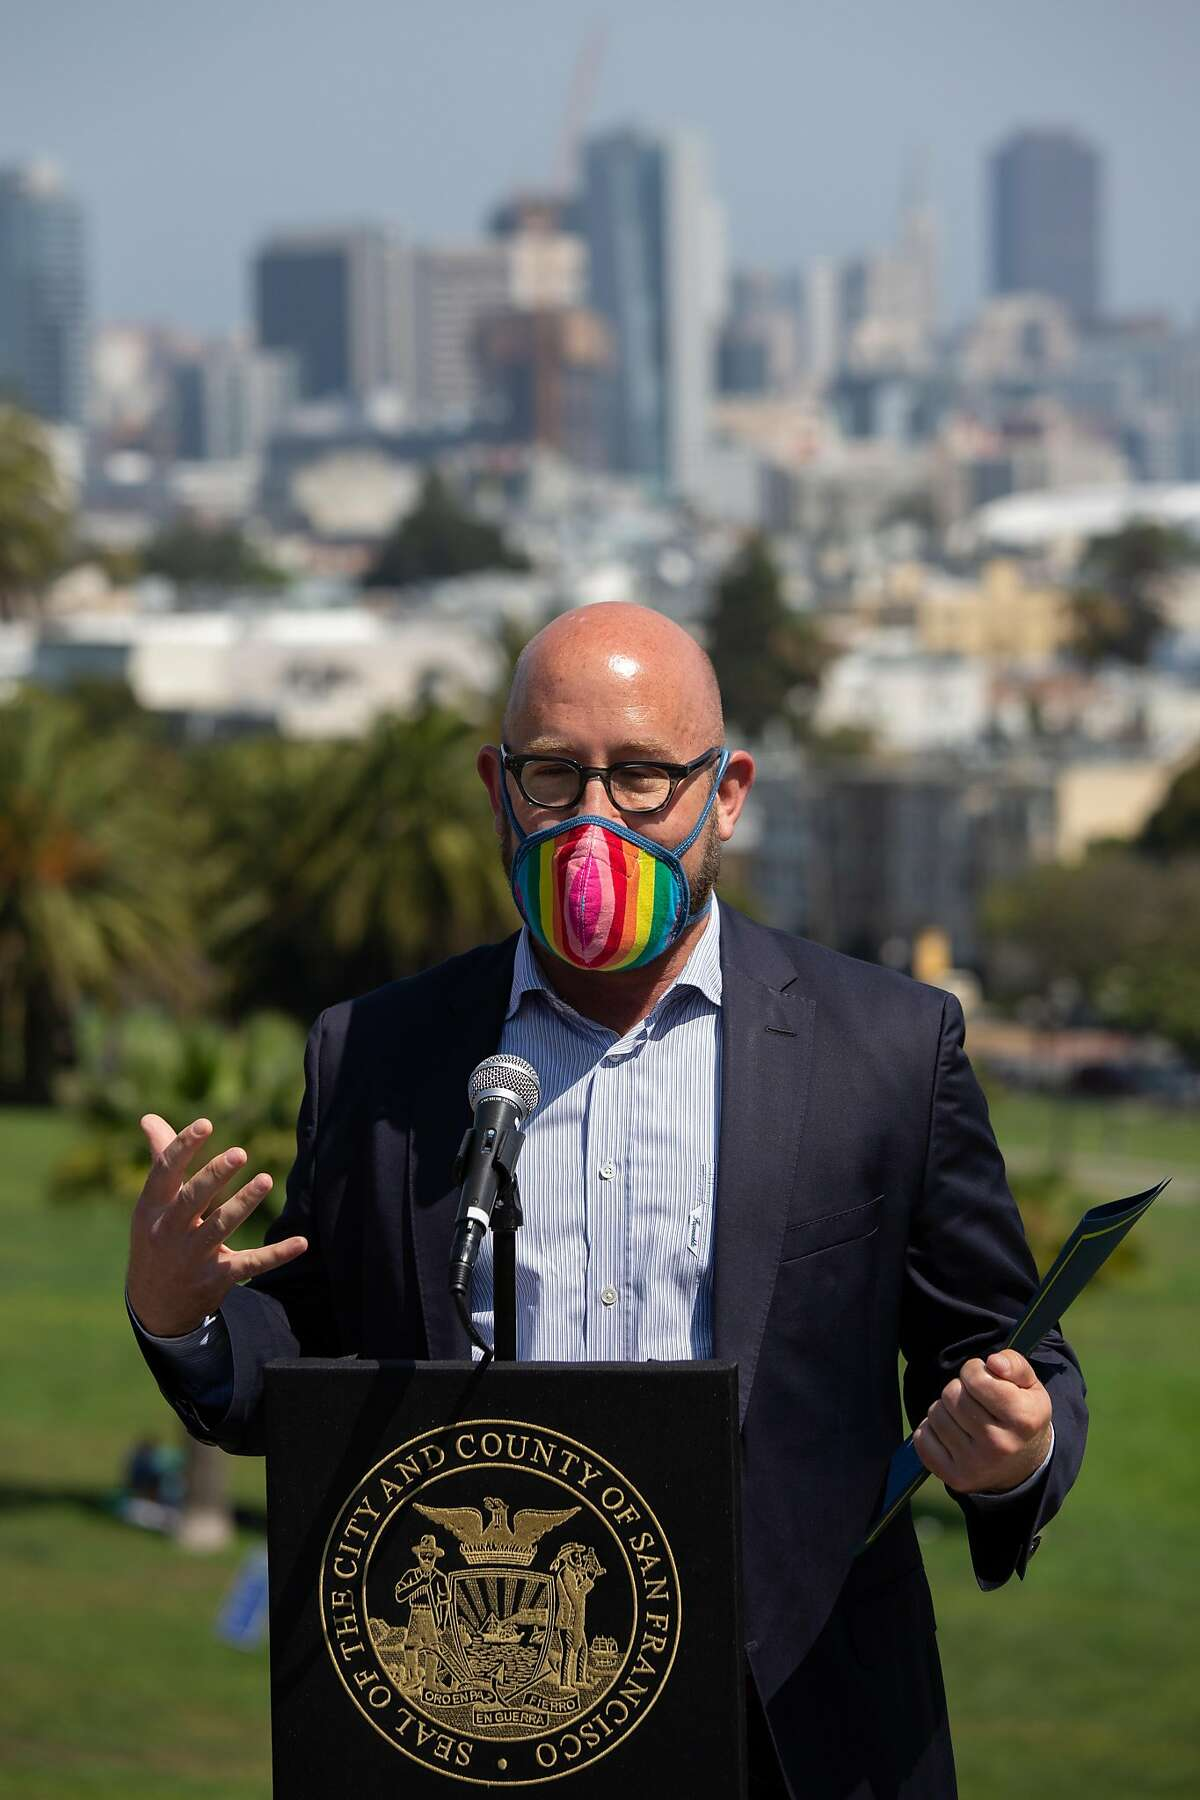 District 8 Supervisor Rafael Mandelman spoke at a press conference at Dolores Park in San Francisco, Calif. on Sept. 4, 2020. The City parterned with the Sisters of Perpetual indulgence to distribute 1000 masks to prevent the spread of Covid 19 over Labor Day Weekend.